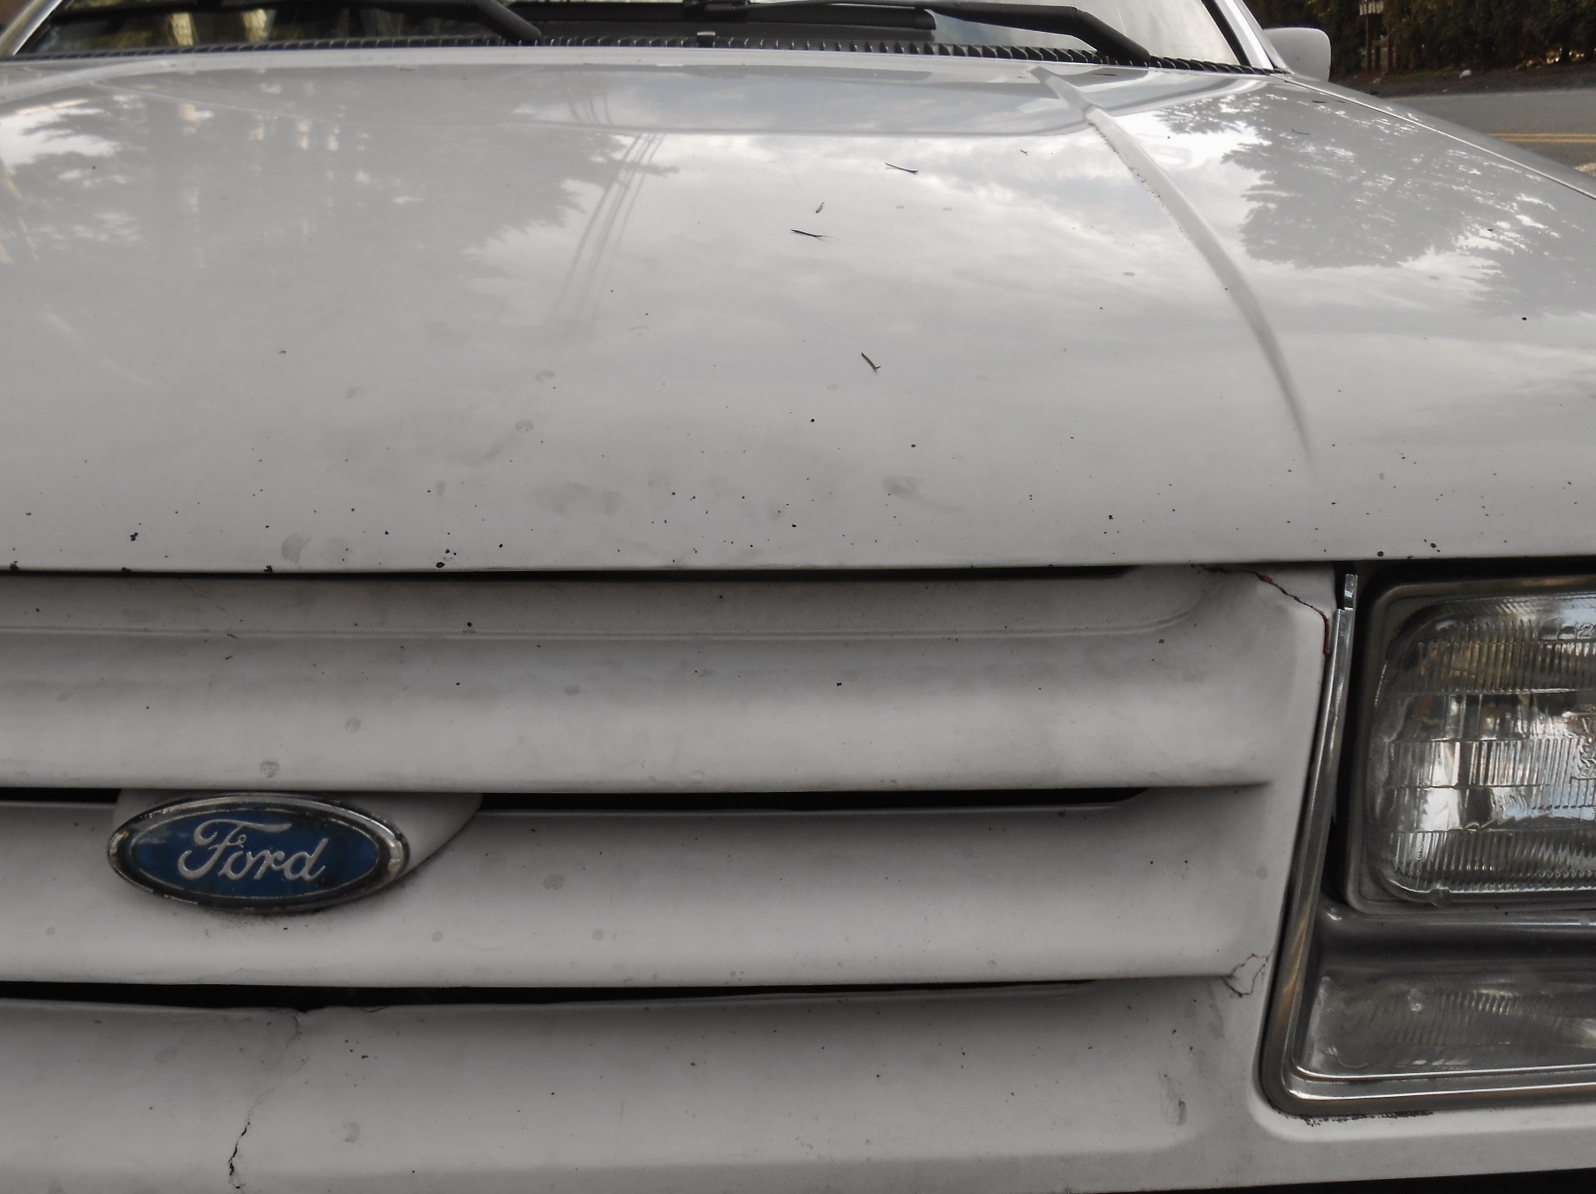 White 1986 Ford Tempo 1985 Fuse Box Seattles Parked Cars 1596x1194